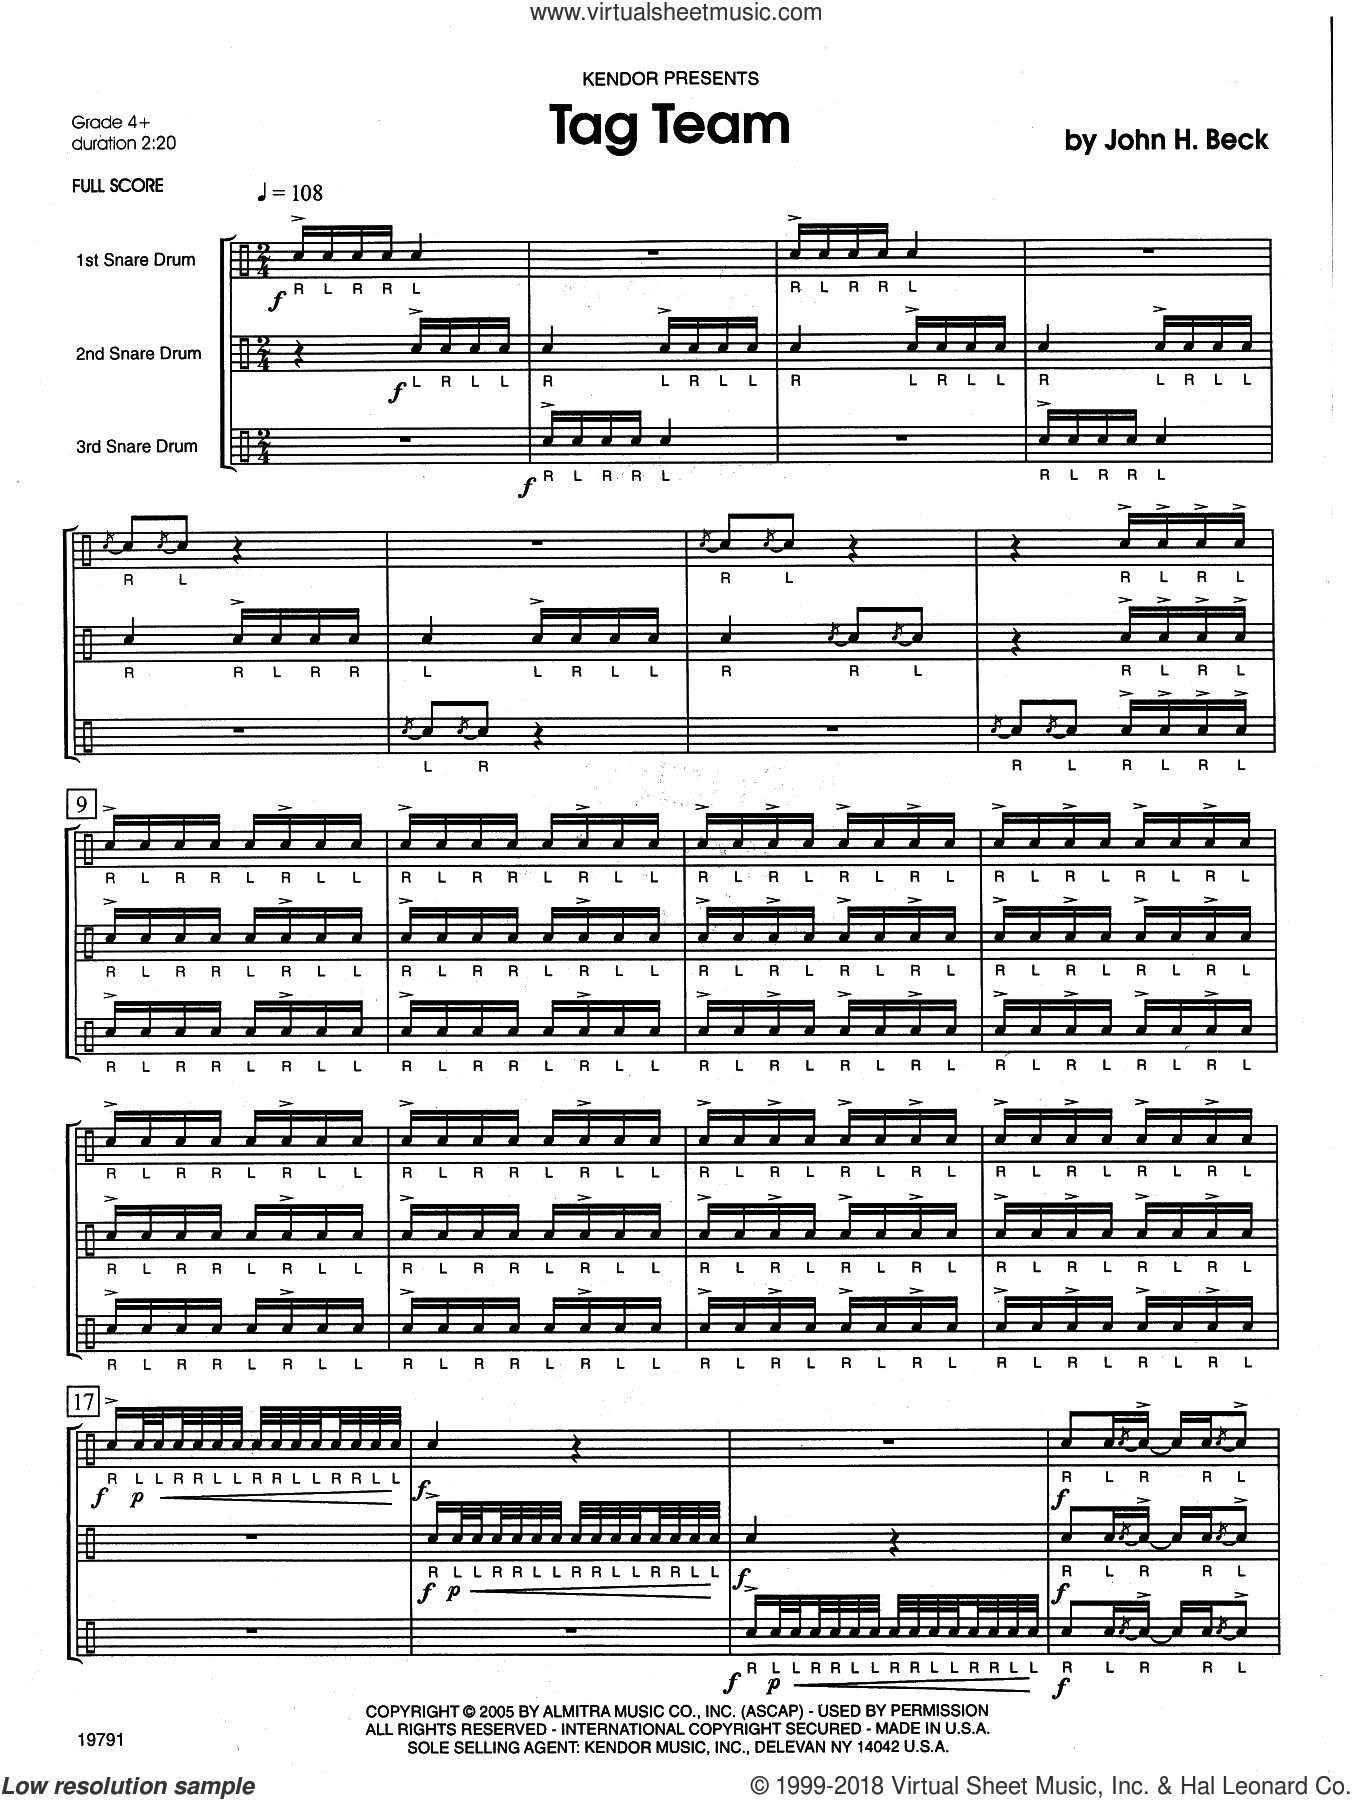 Tag Team (COMPLETE) sheet music for percussions by John H. Beck, intermediate